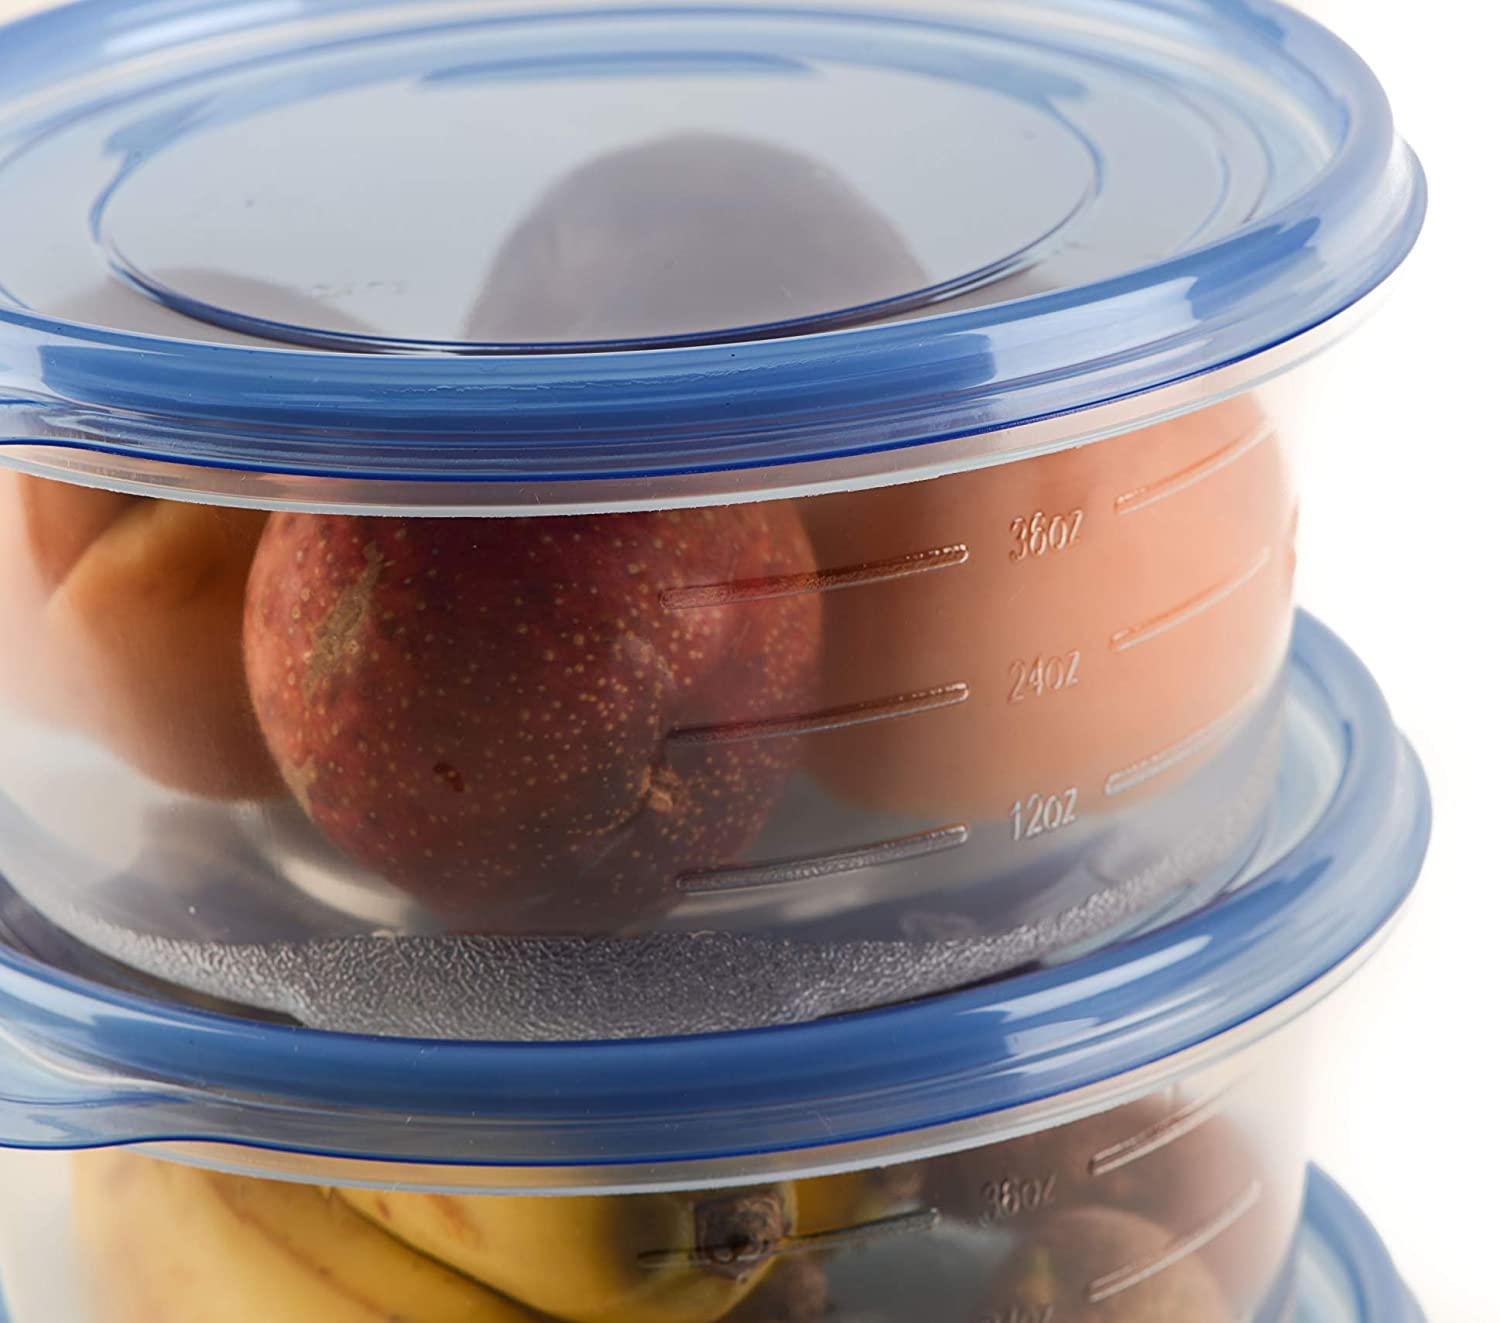 Round Plastic Reusable Storage Containers with Snap On Lid